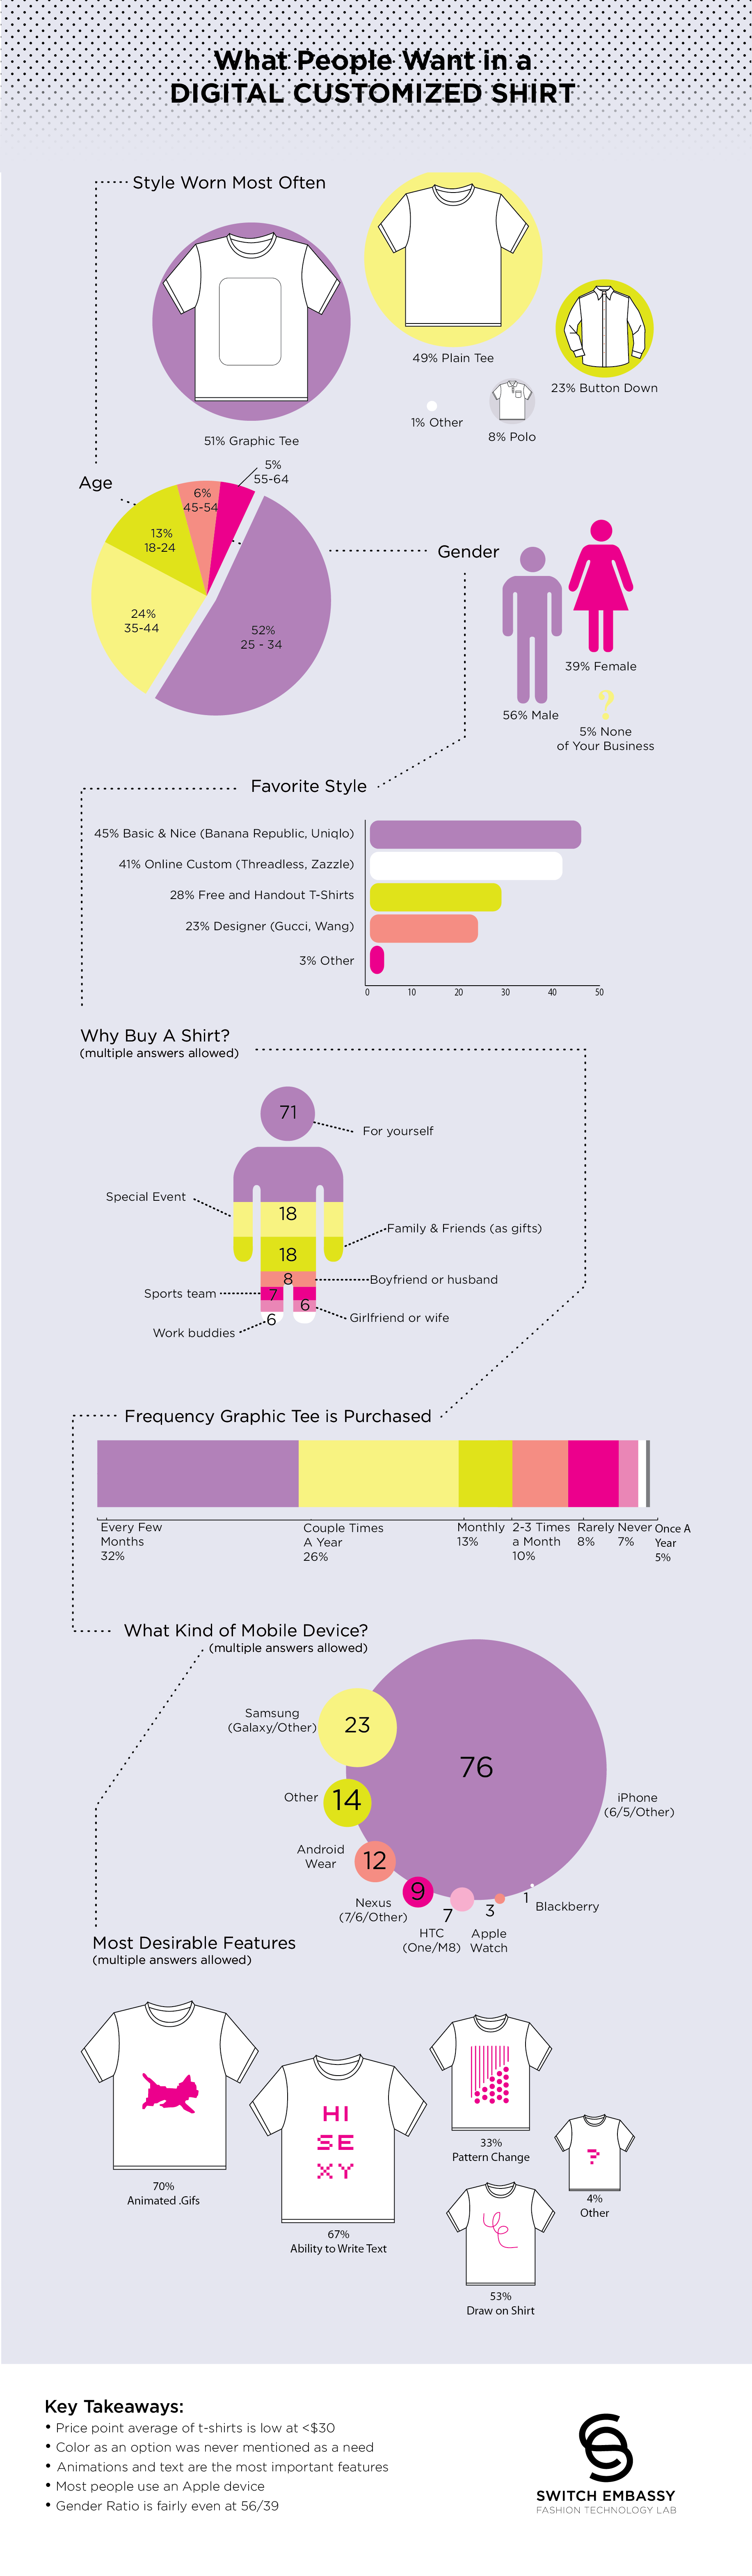 Typeform Results 103 People-01.png